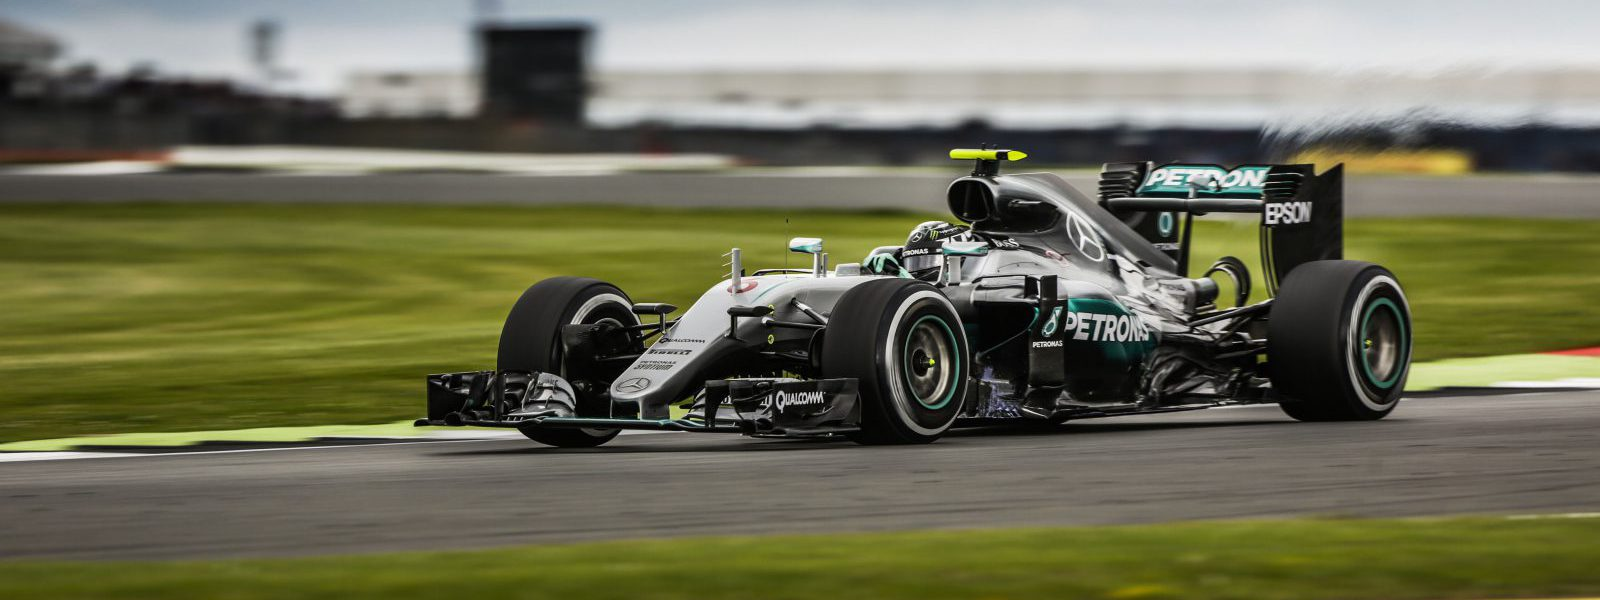 Motorsports: FIA Formula One World Championship 2016, Grand Prix of Great Britain